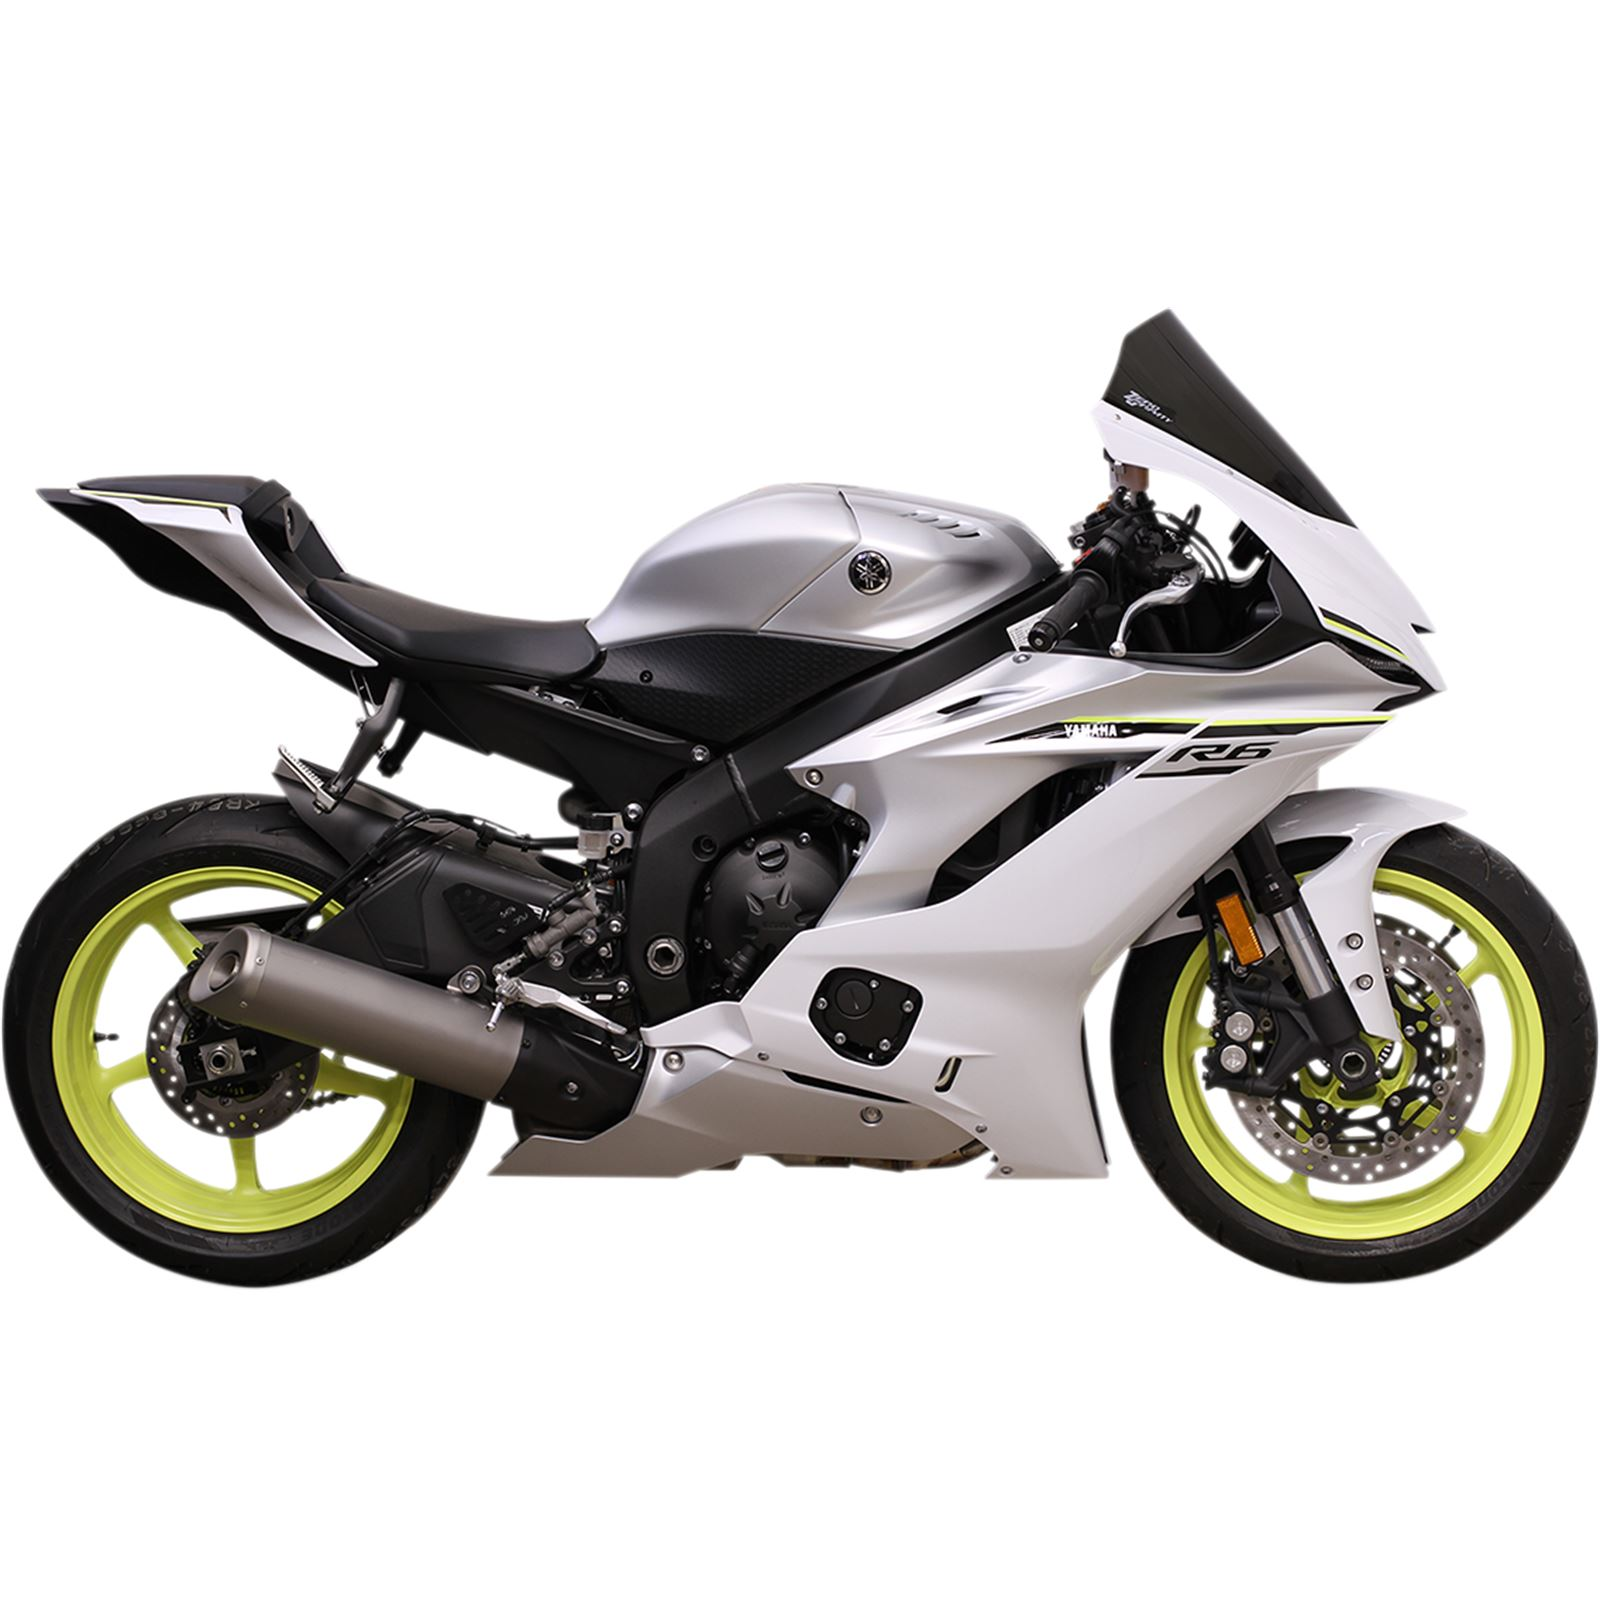 Zero Gravity Windshields Sport Winsdscreen - Light Smoke - YZF-R6